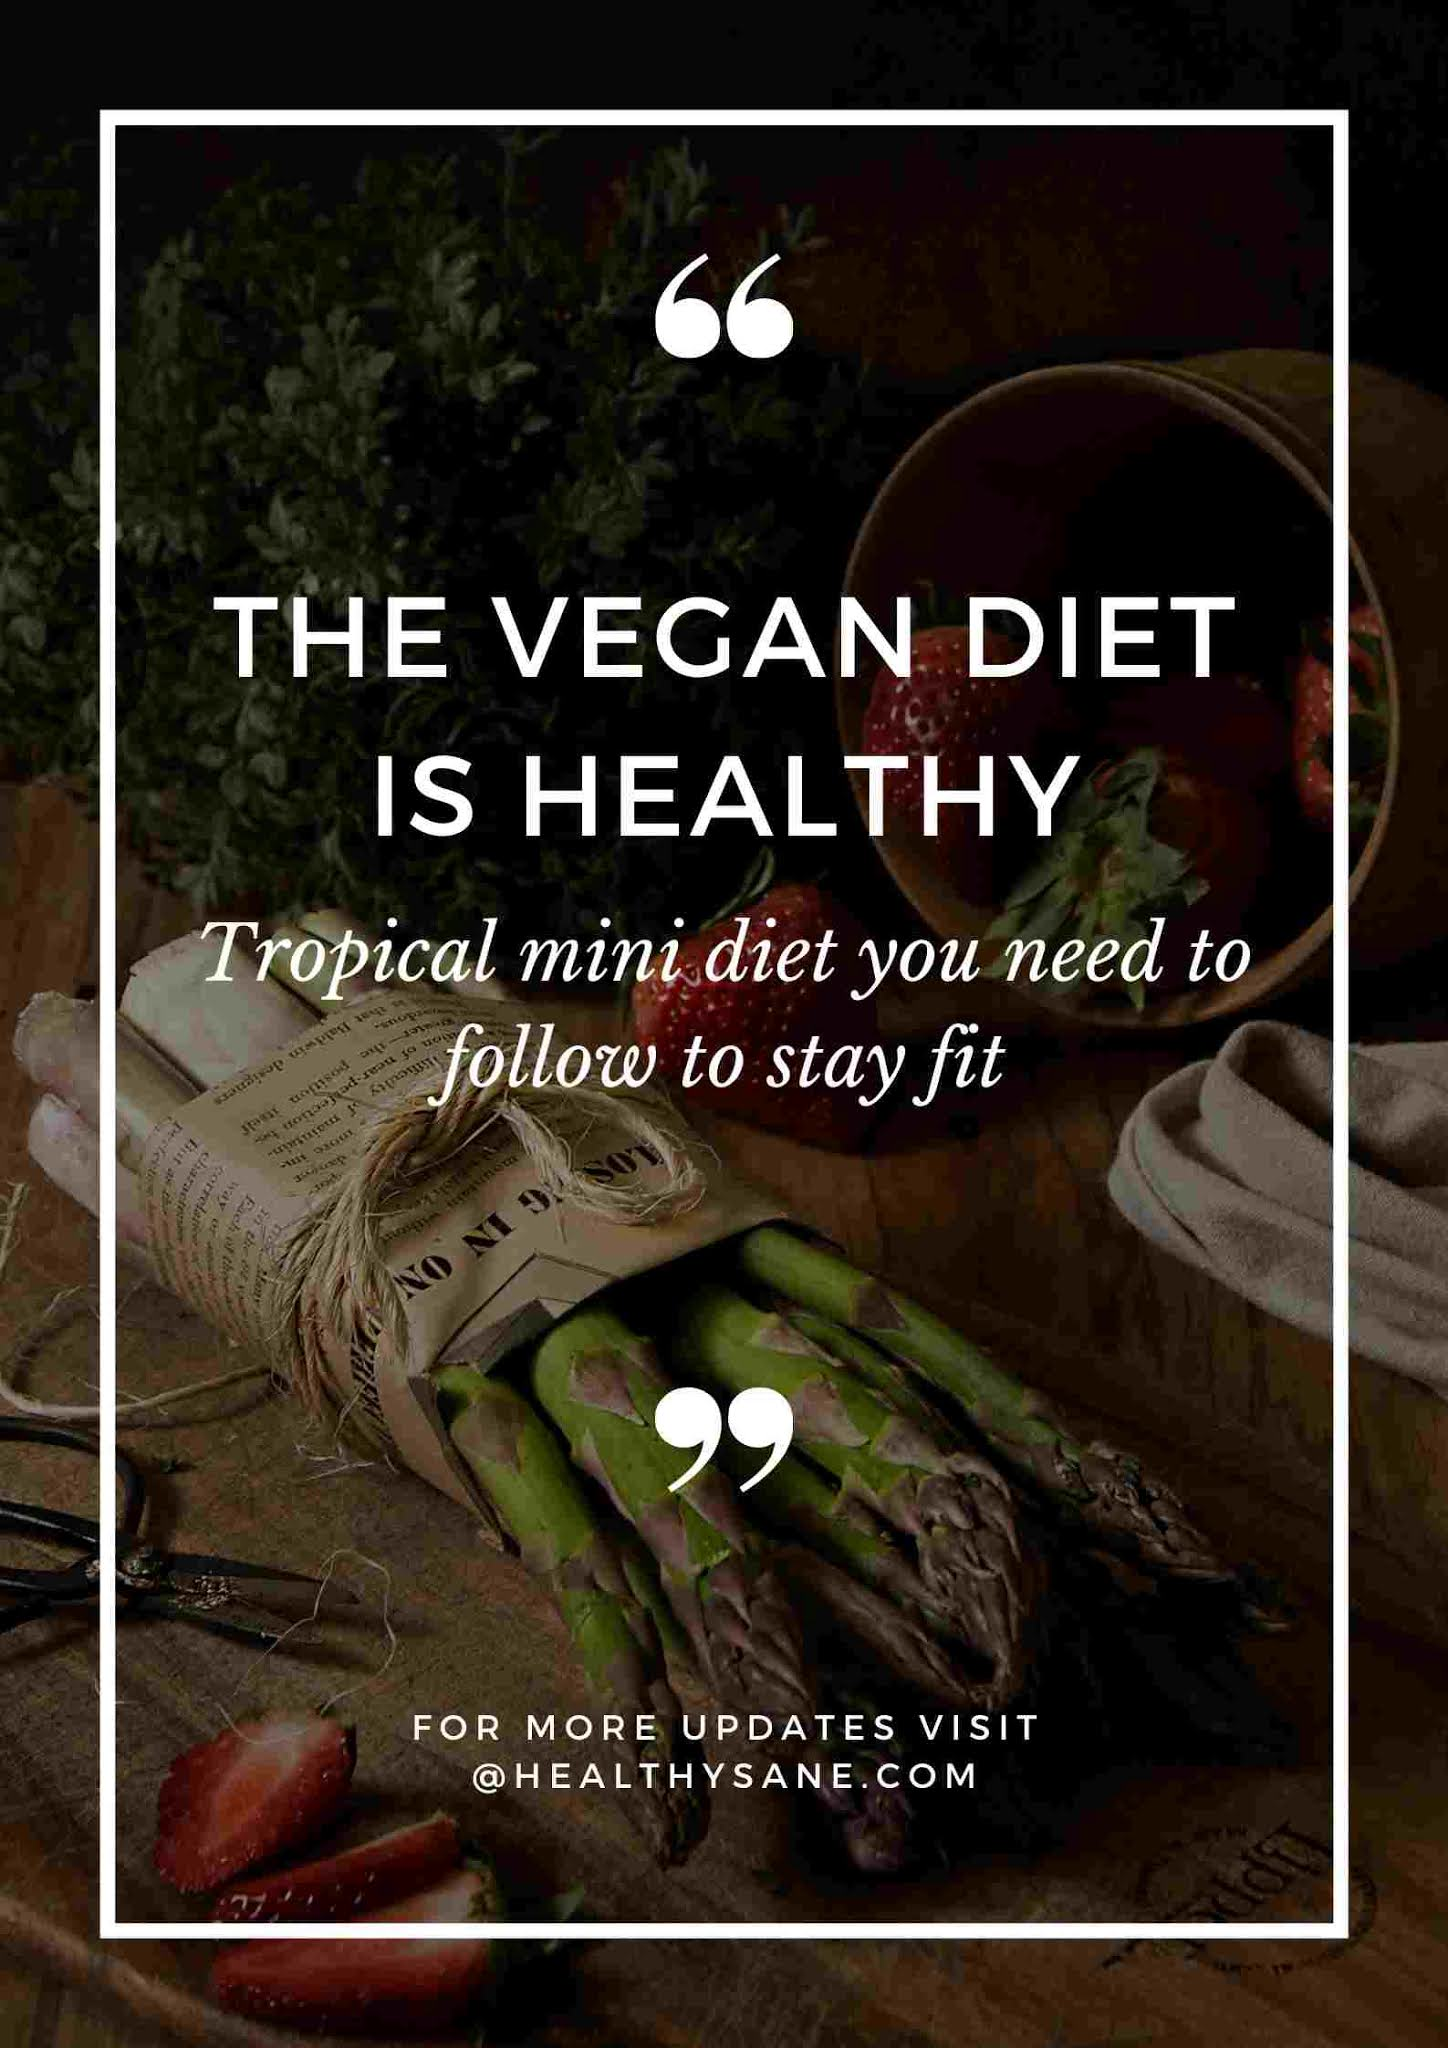 Tropical mini diet, vegan diet, diet, fitness, workout